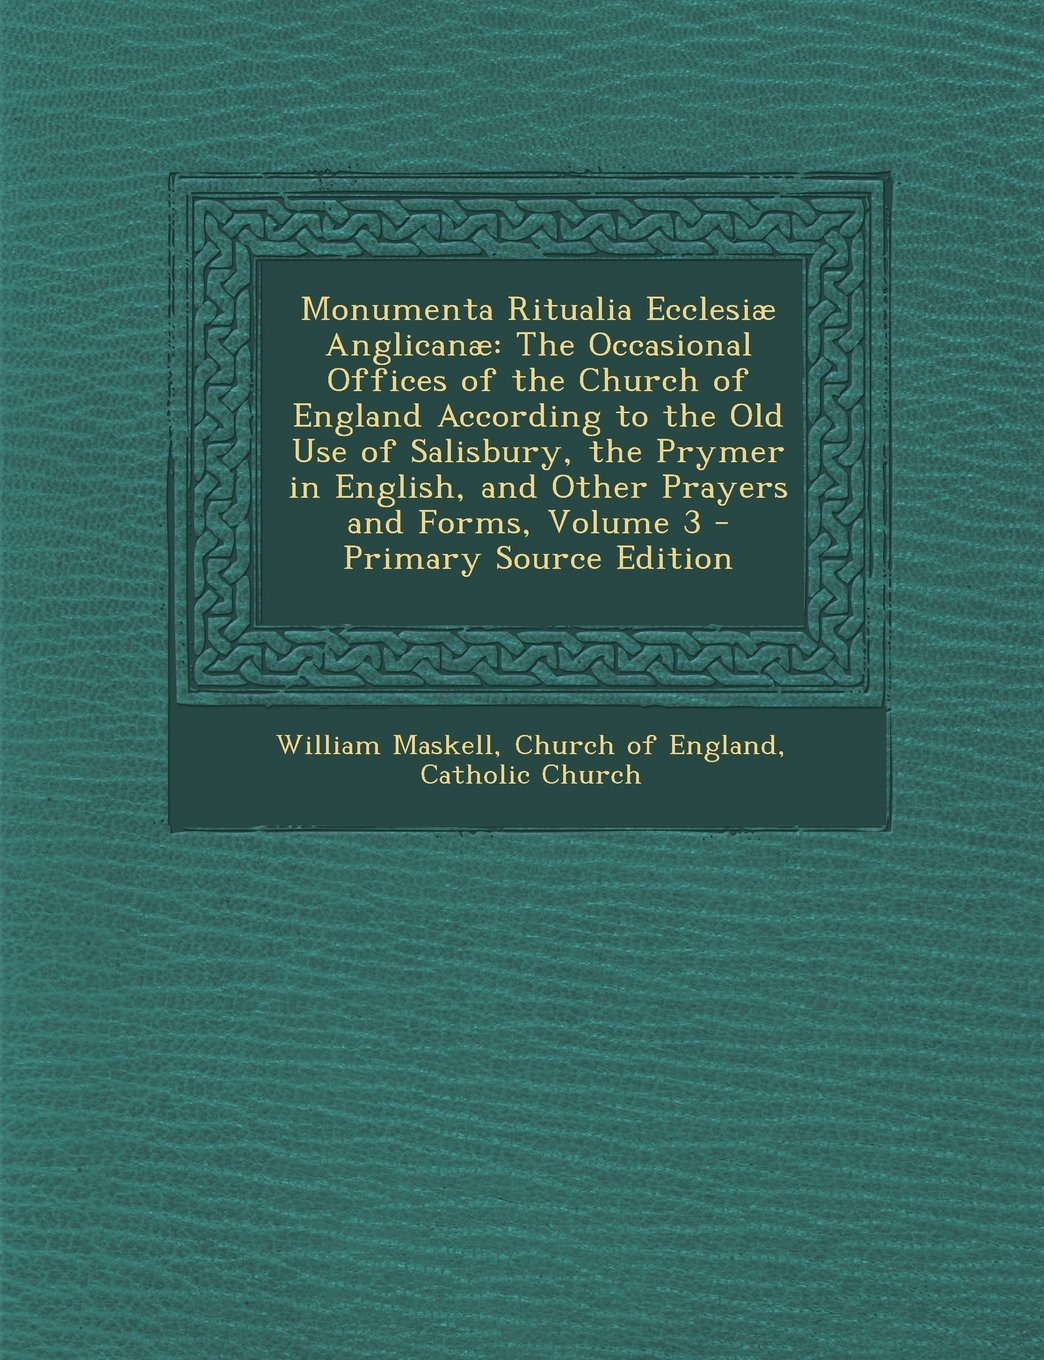 Download Monumenta Ritualia Ecclesiæ Anglicanæ: The Occasional Offices of the Church of England According to the Old Use of Salisbury, the Prymer in English, and Other Prayers and Forms, Volume 3 pdf